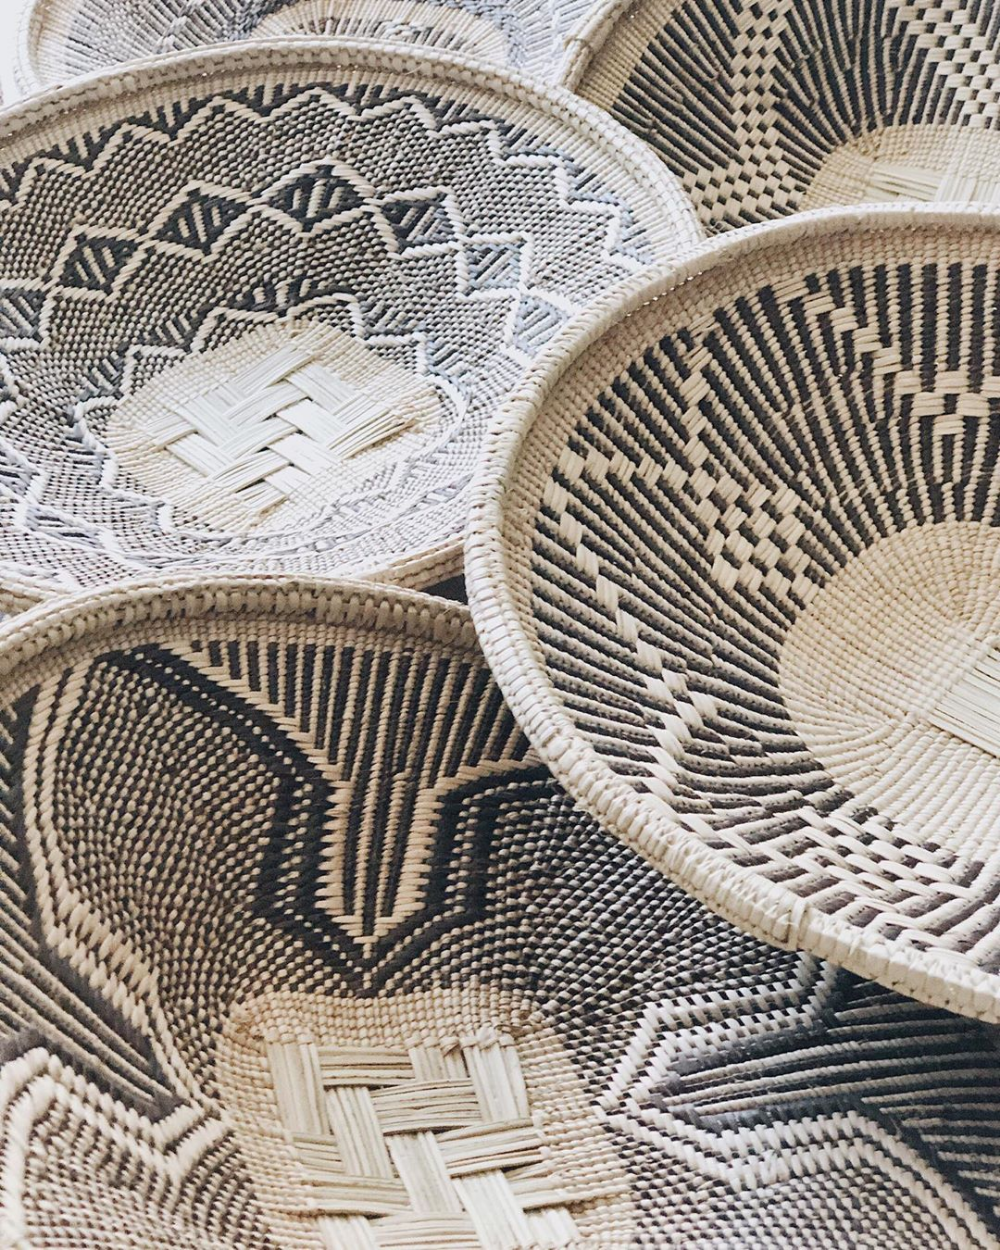 Each Woven Palm Basket is handmade in Zimbabwe, Southern